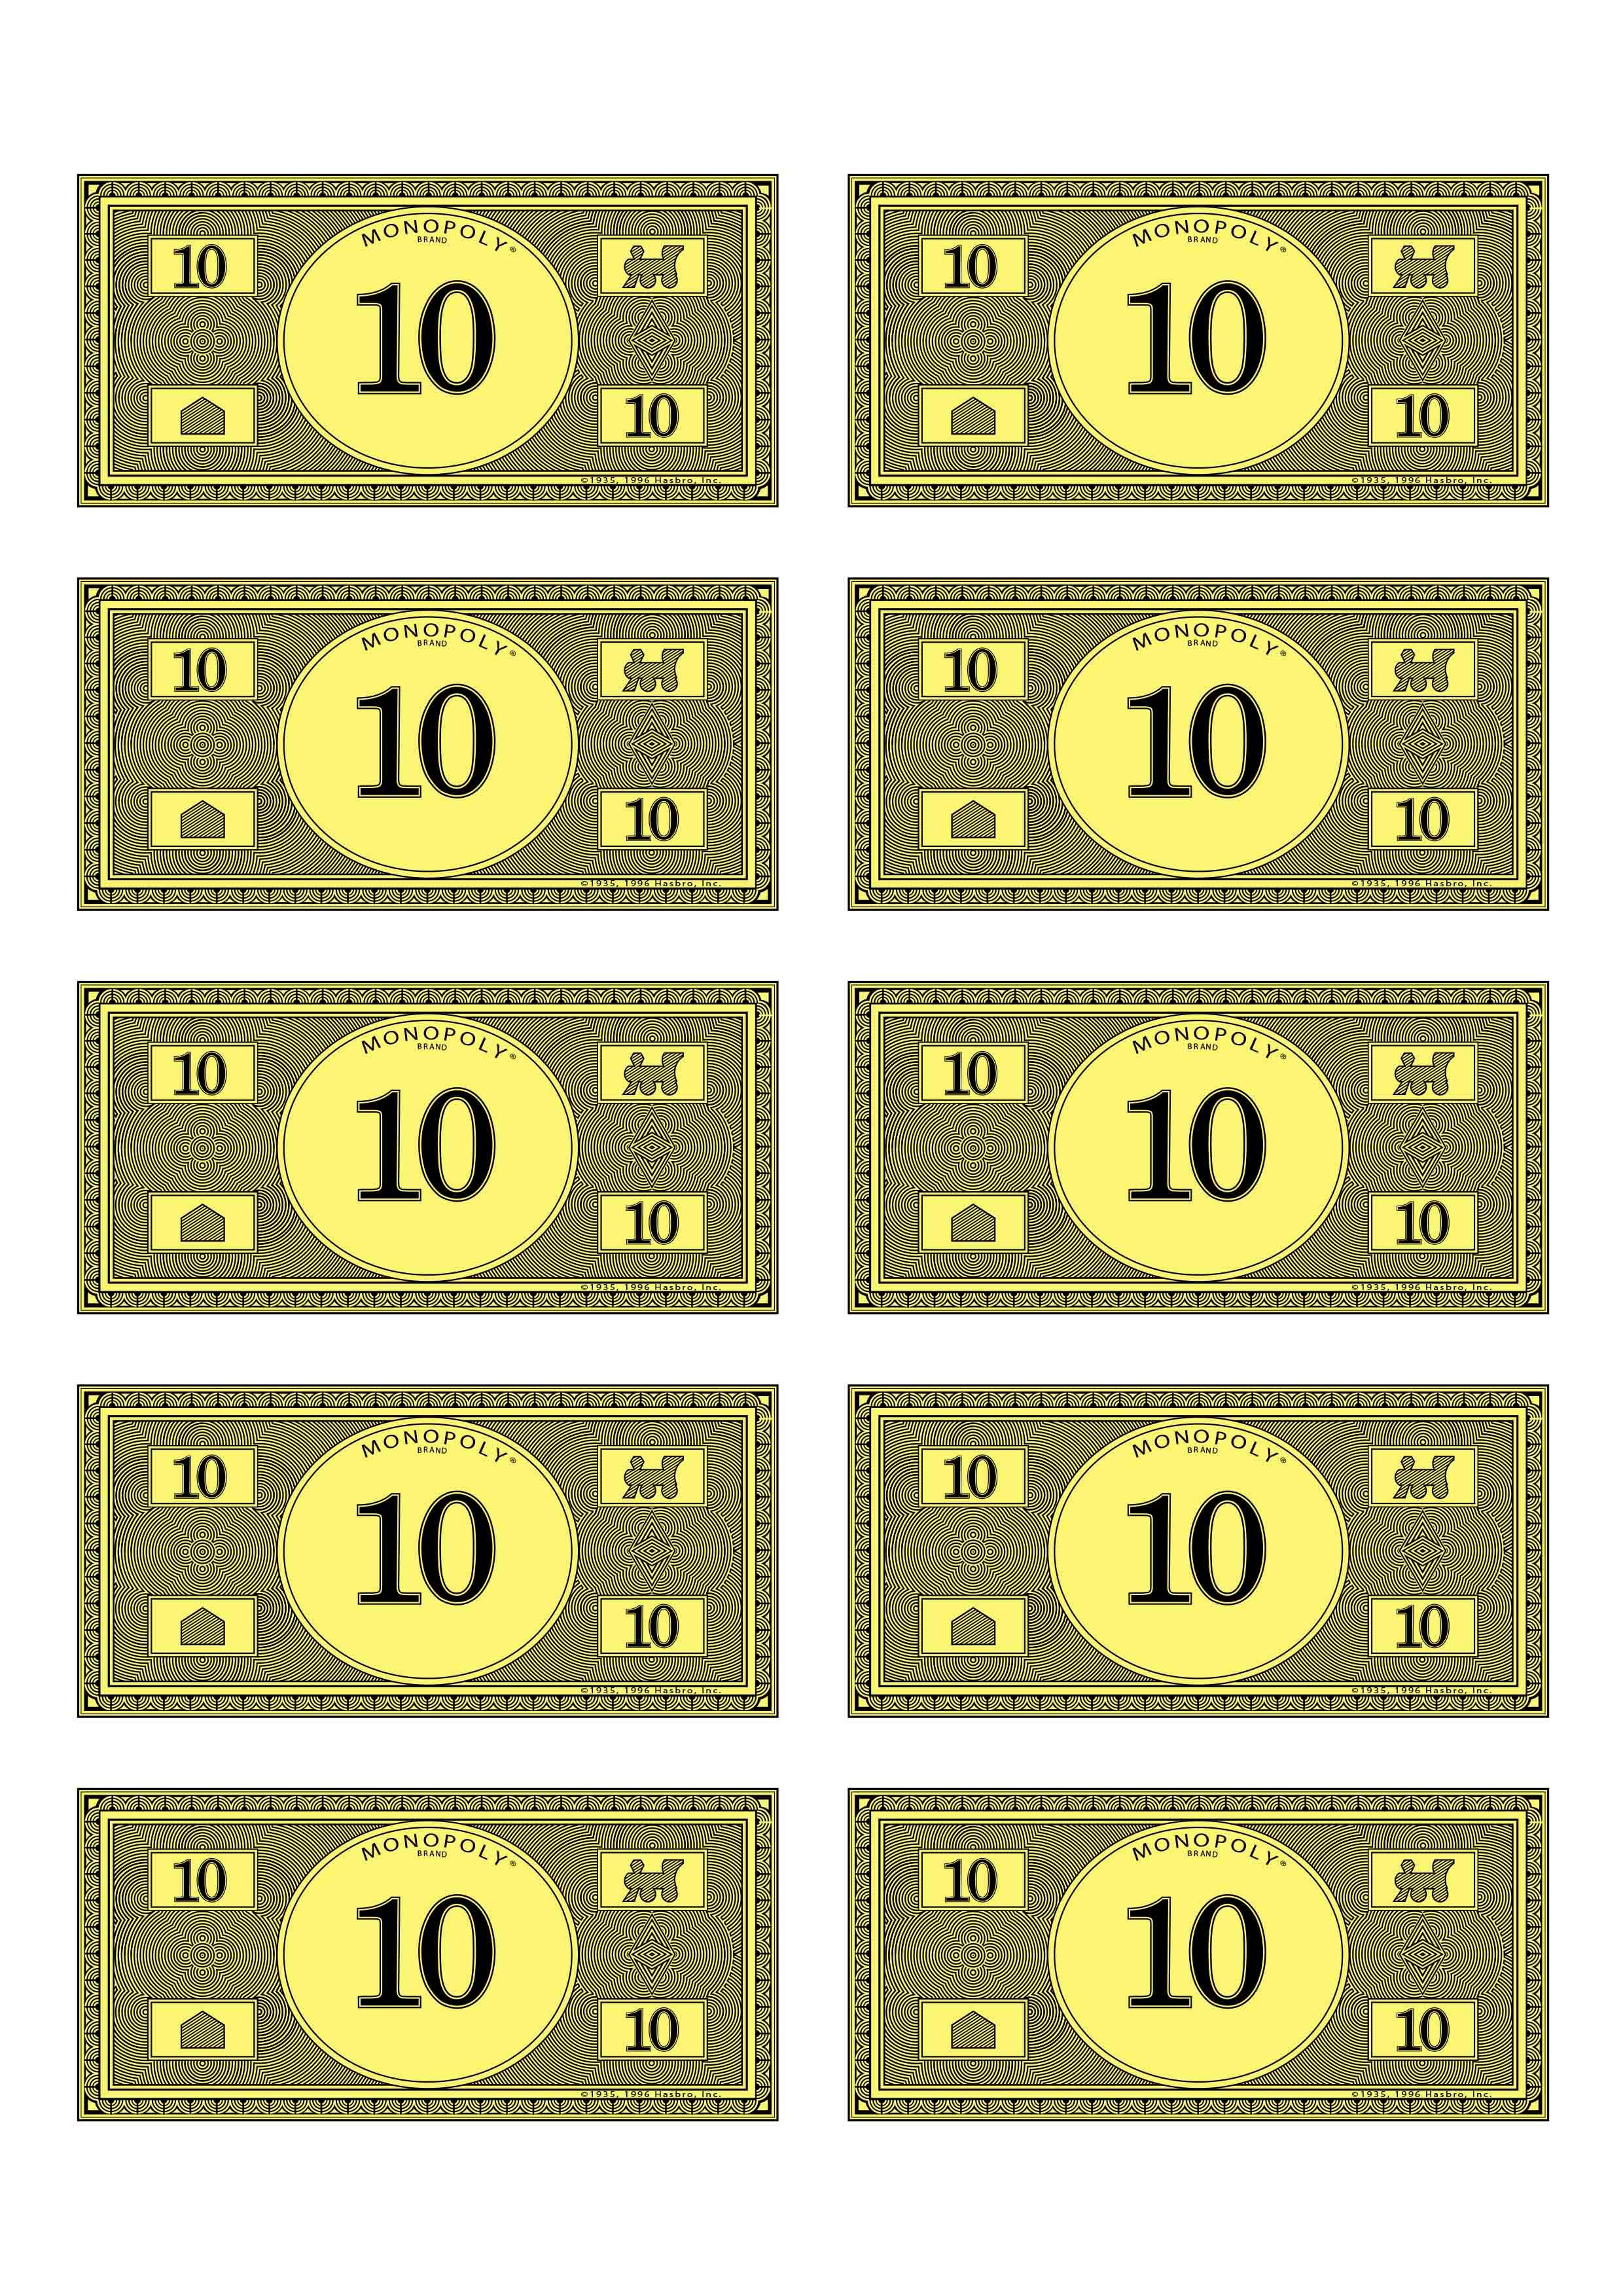 This is an image of Decisive Monopoly Money Printable